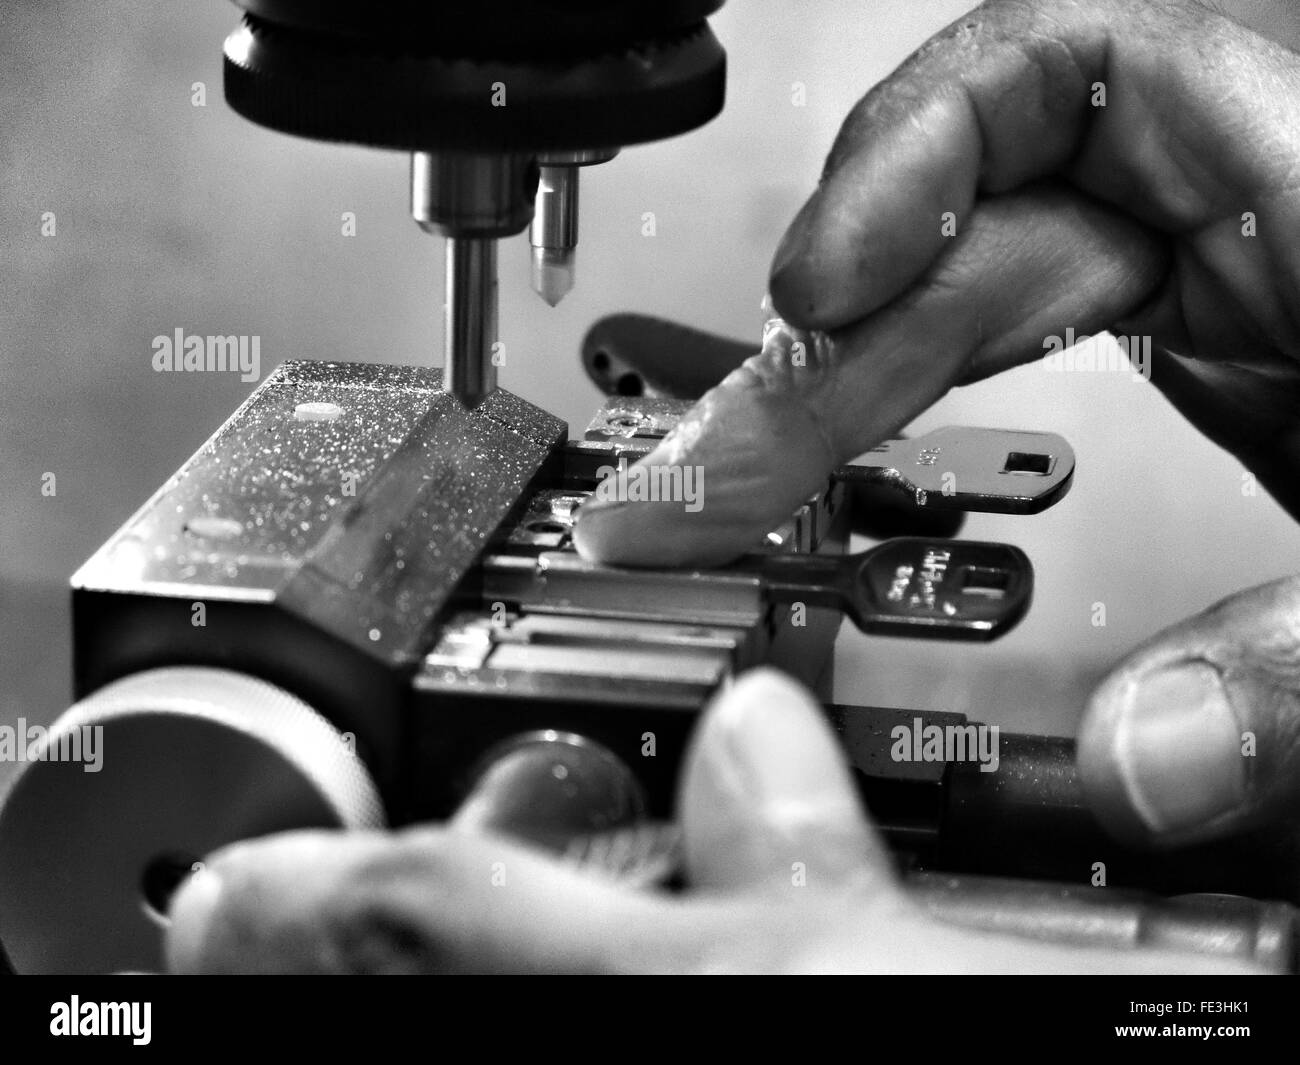 Cropped Image Of Locksmith At Work - Stock Image